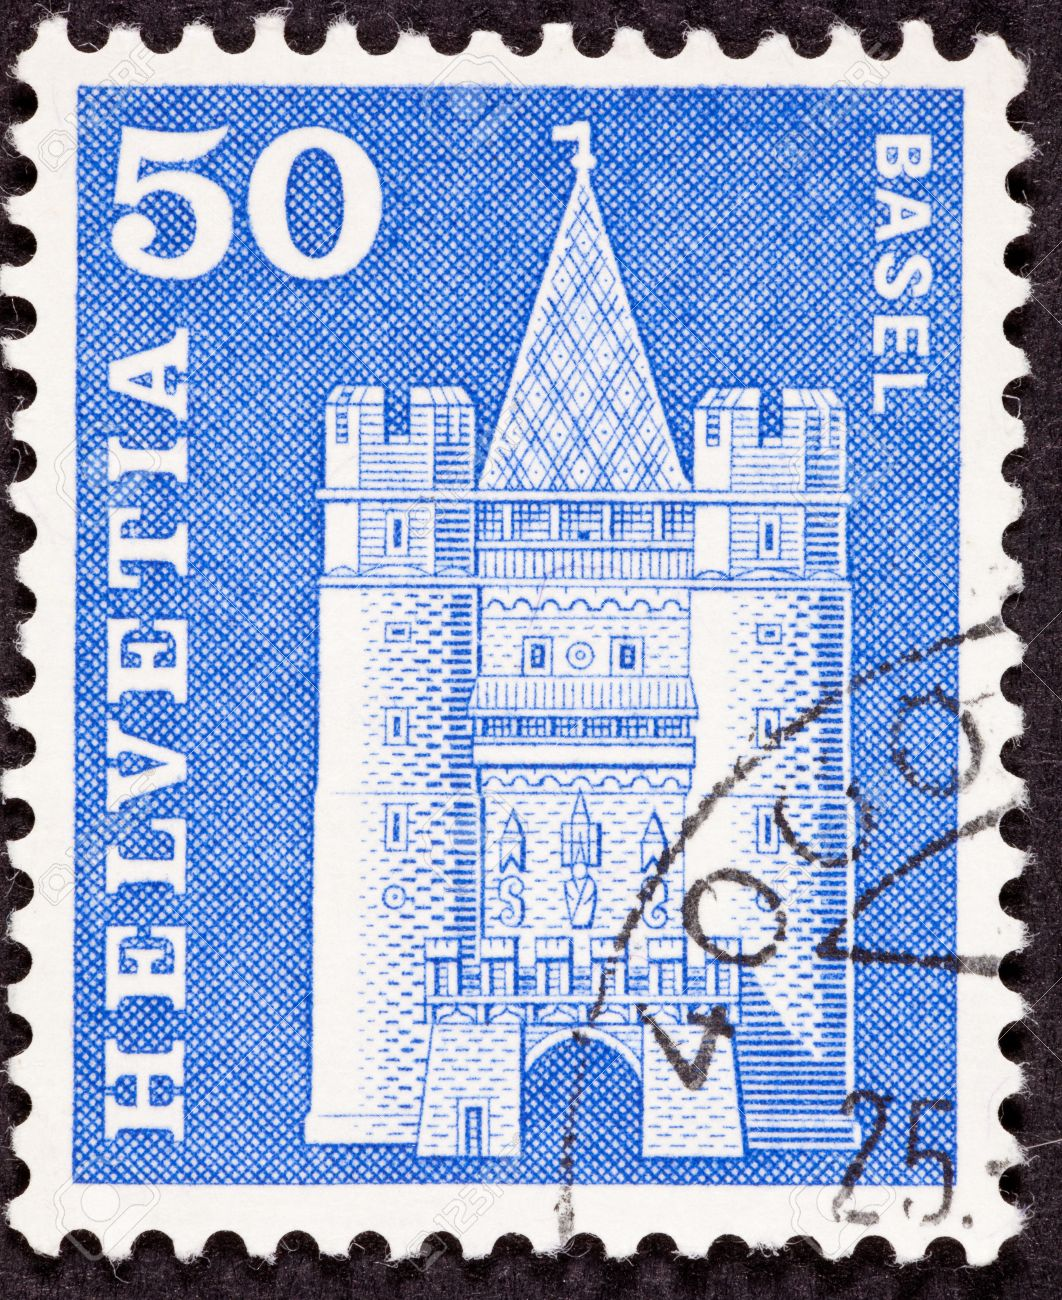 1062x1300 Canceled Swiss Postage Stamp Drawing Of Basel M Nster Cathedral